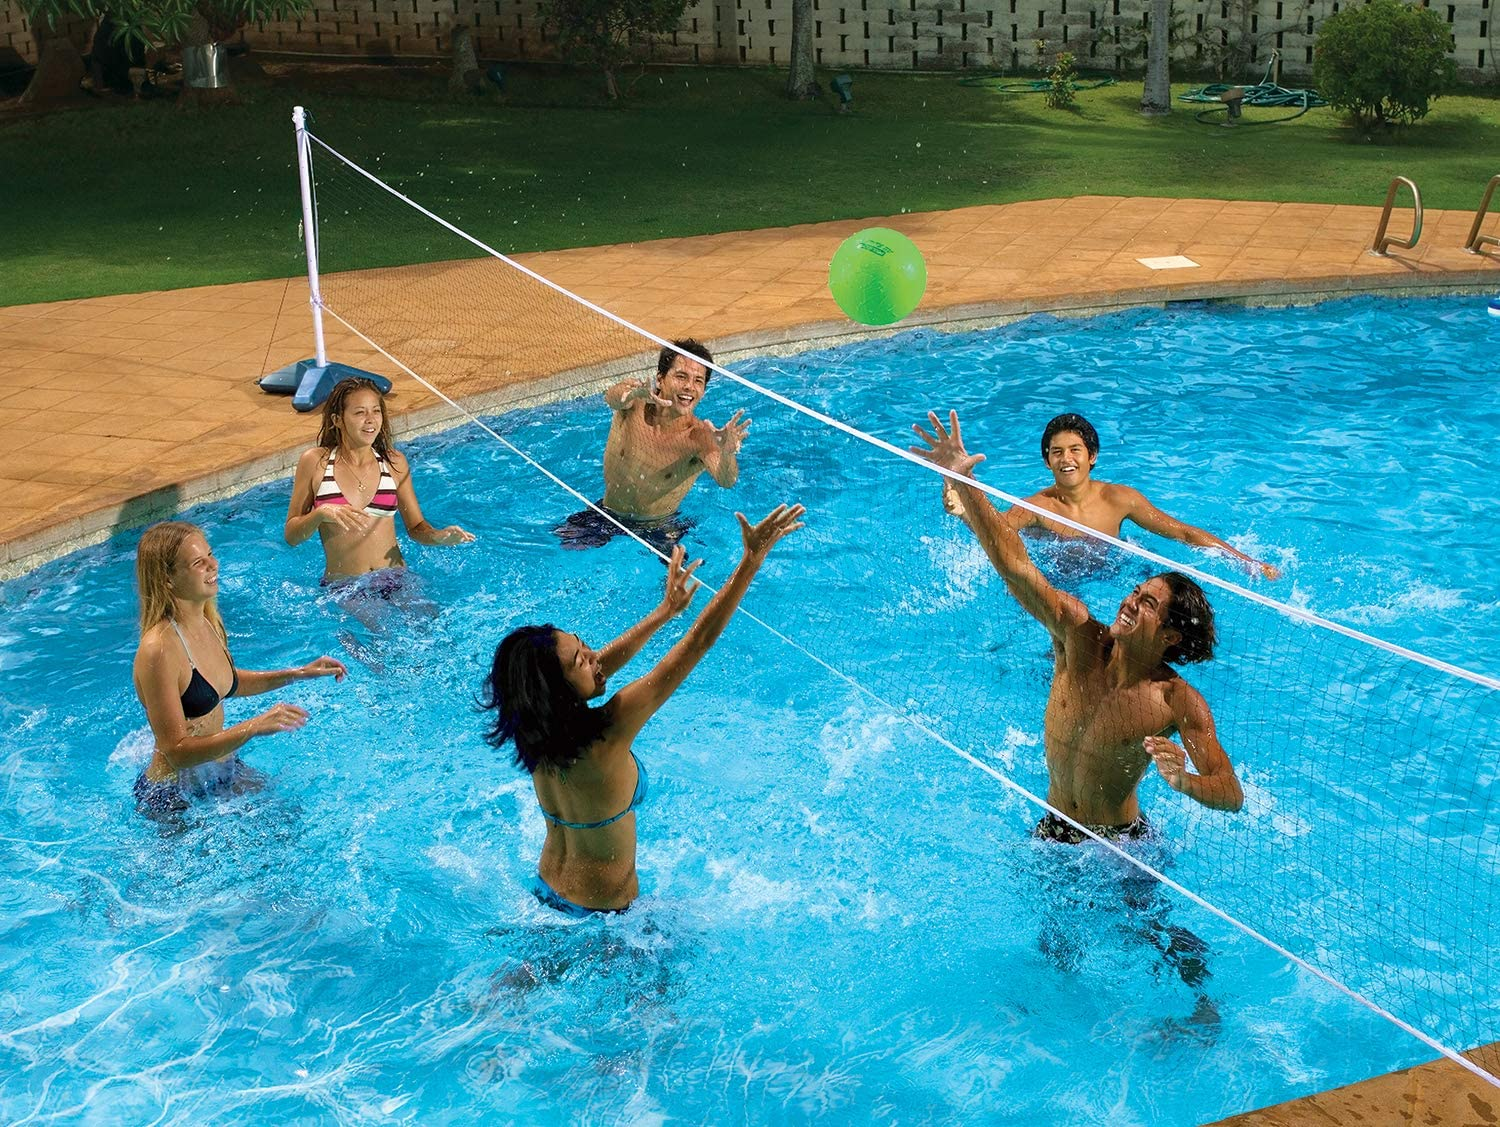 B000W0L9NK Poolmaster Across In Ground Swimming Pool Volleyball Pool Game 81siFeilkzL